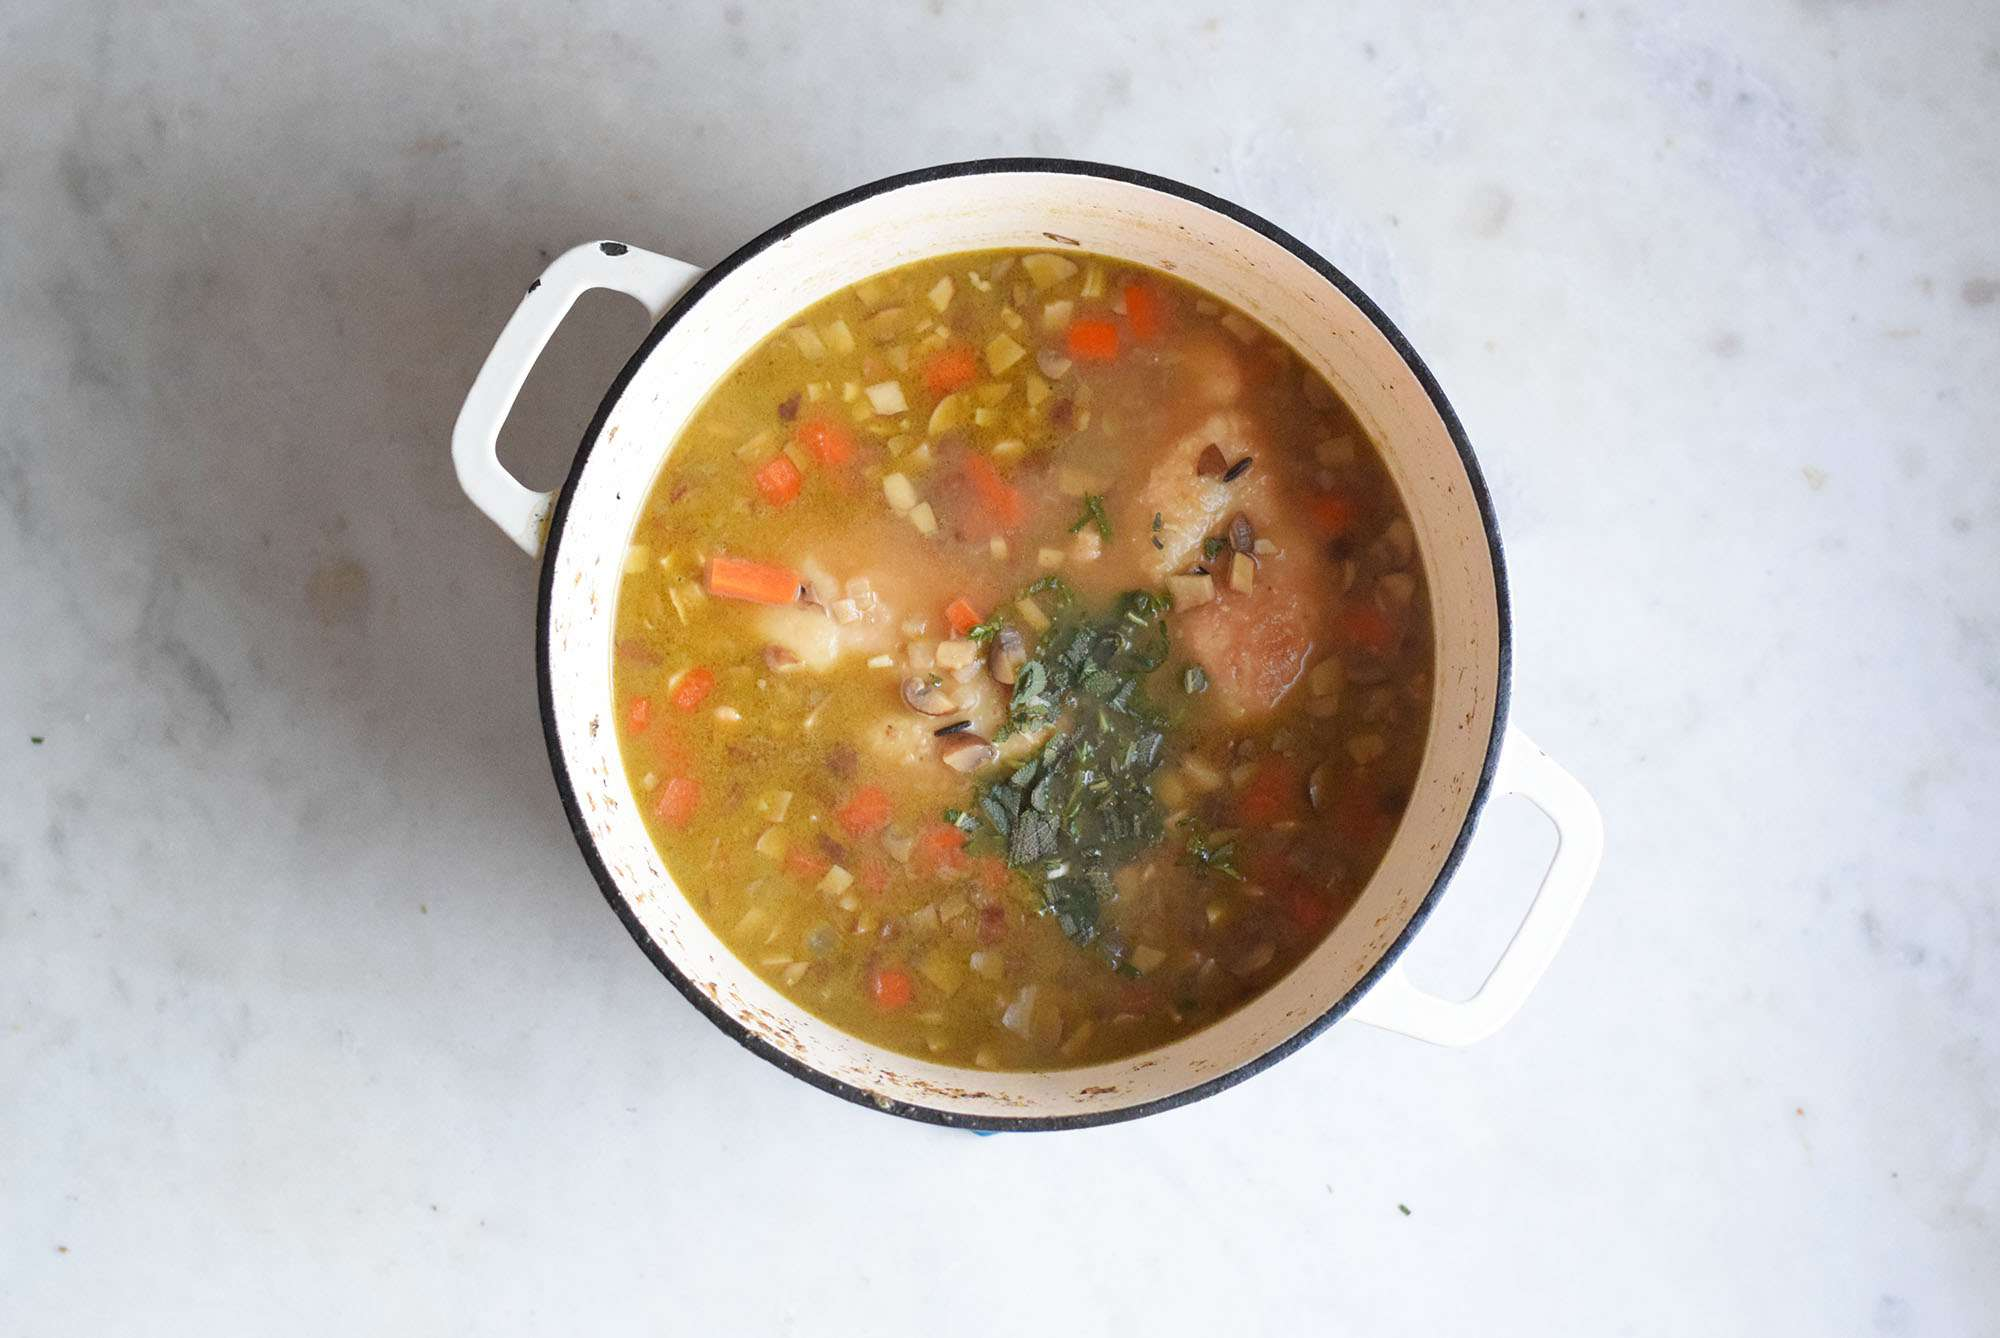 chicken and wild rice in a pot of soup